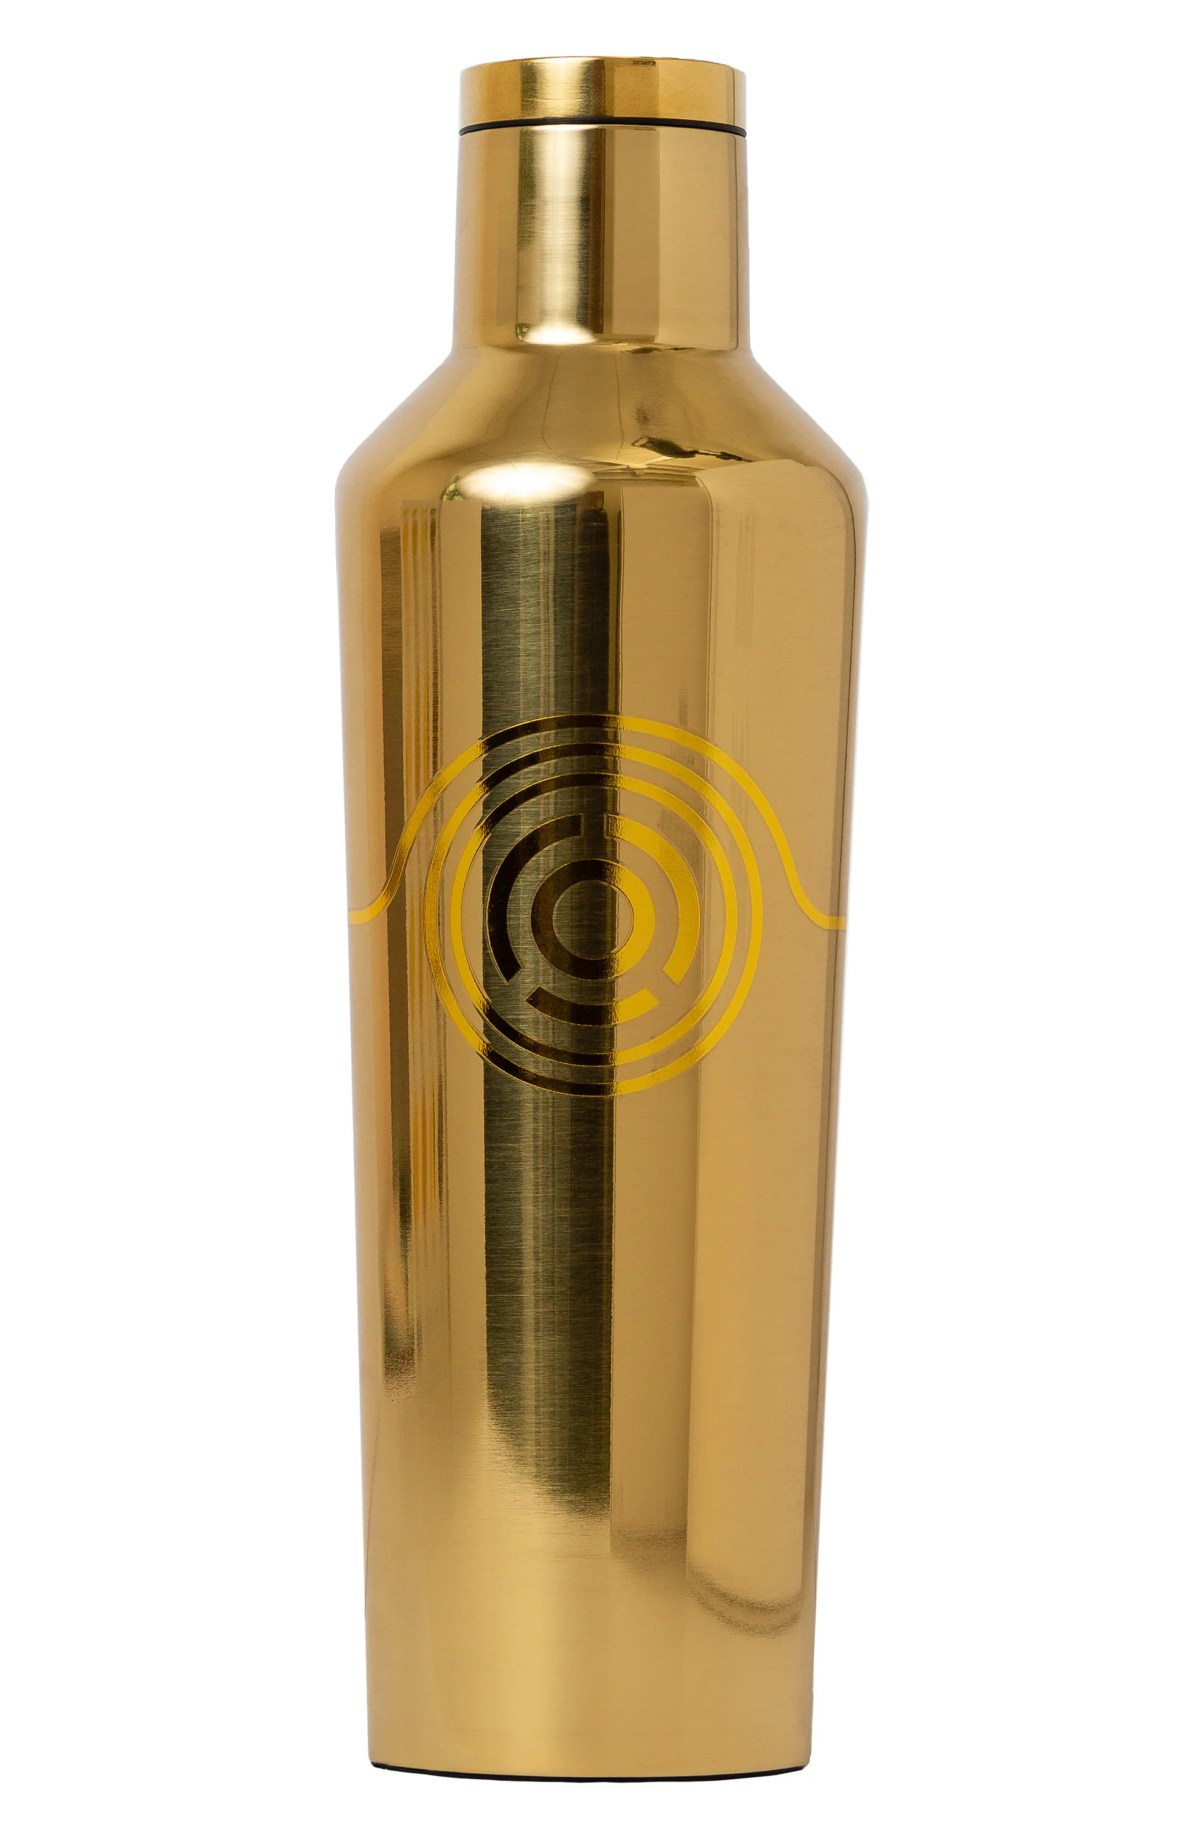 CORKCICLE Star Wars<sup>™</sup> Insulated Stainless Steel Canteen, Main, color, GOLD C-3PO